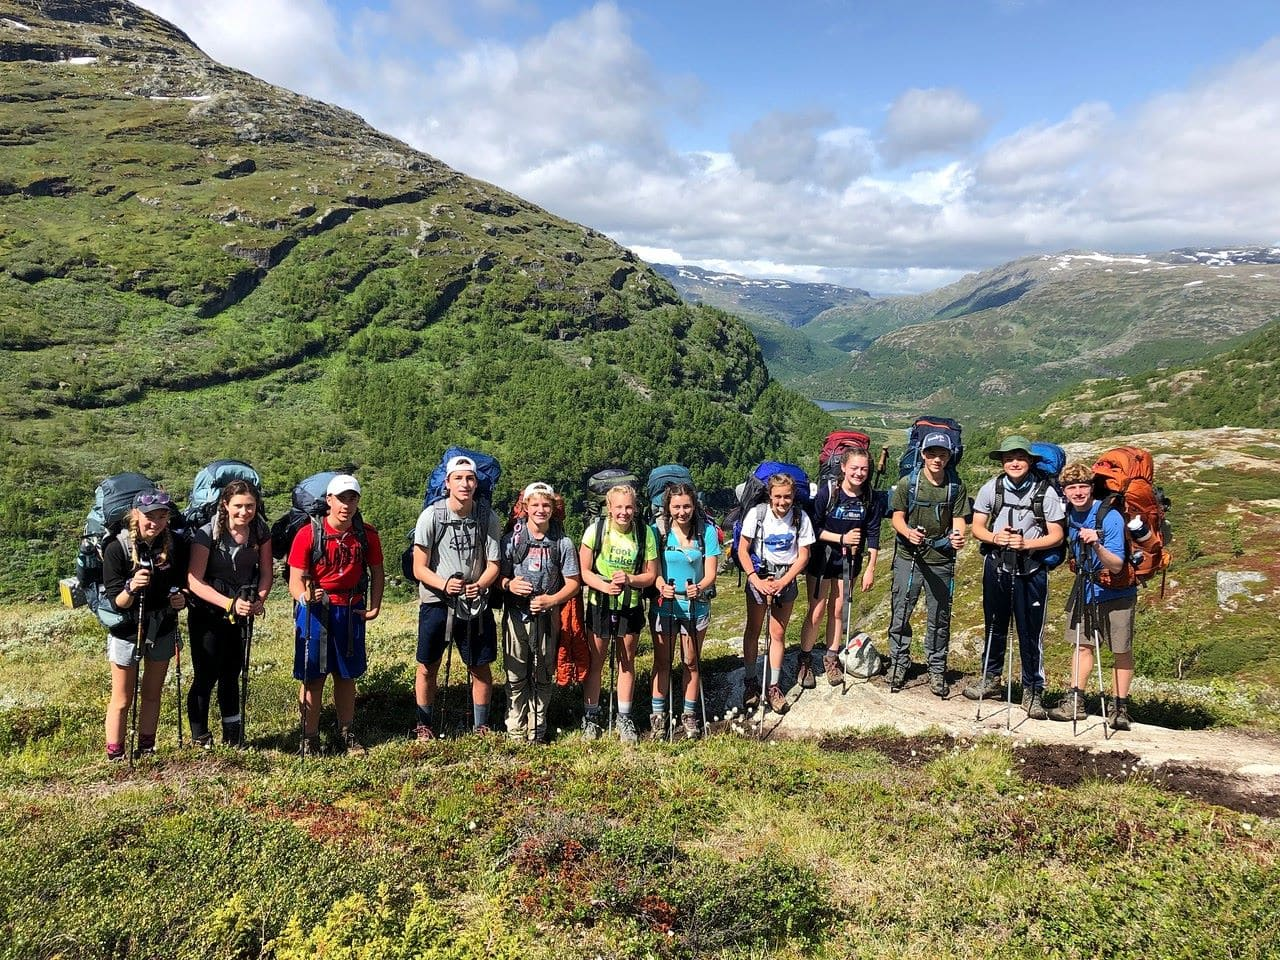 Campers pause for a photo in the Norwegian wilderness this summer on their adventure program